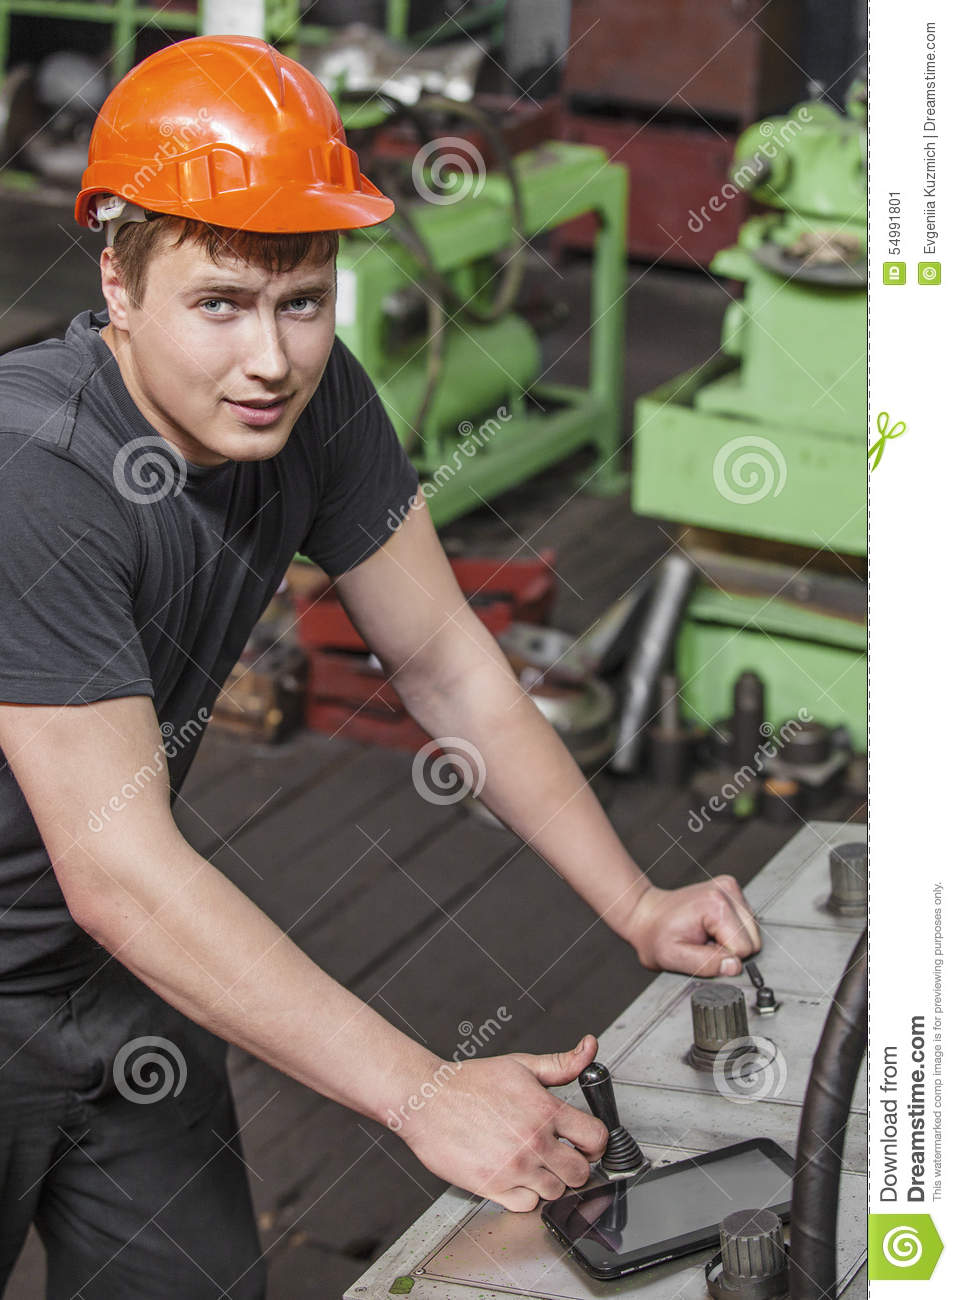 The young man working at the old factory on installation of equipment